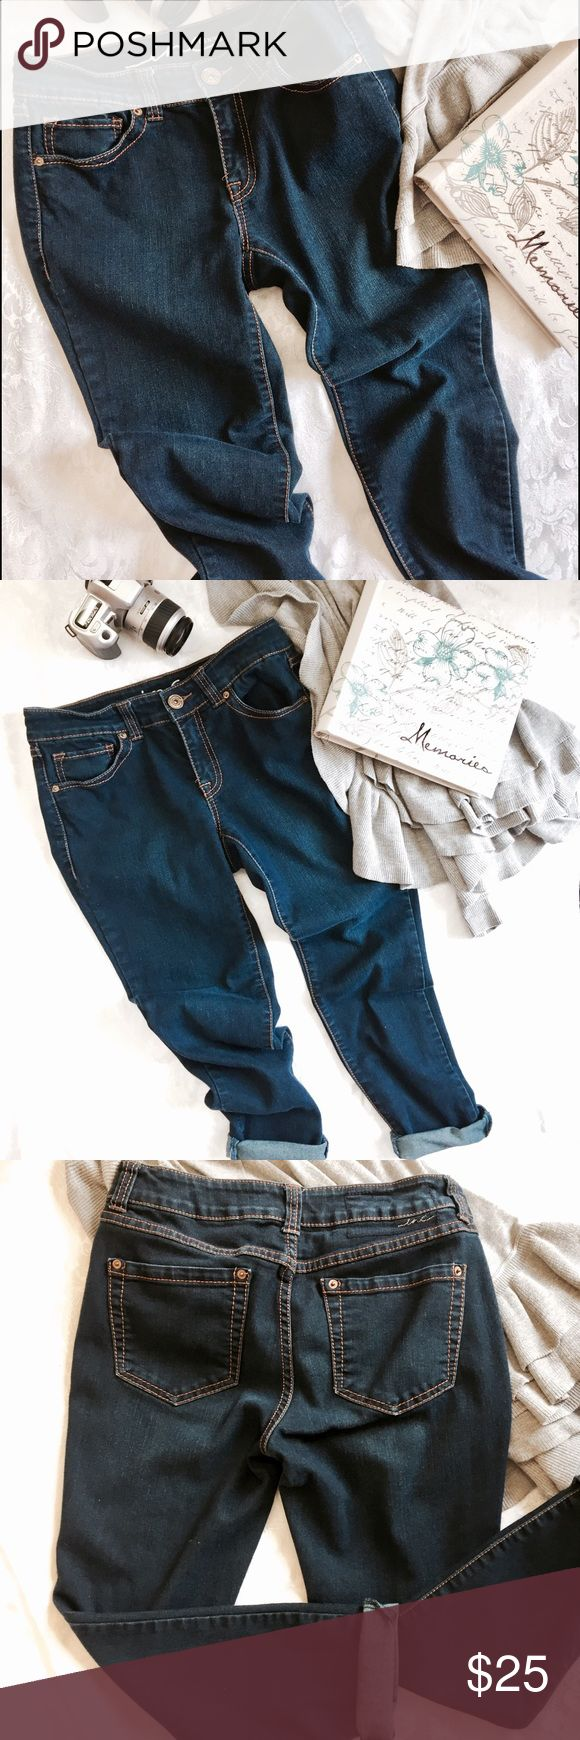 INC Skinny leg jeans Super cute skinny leg jeans, cotton, polyester, rayon and spandex, inseam 25 inches, size 6 petite.  These jeans are really comfortable because of the spandex, they are mid rise, super comfortable, EUC INC Jeans Skinny